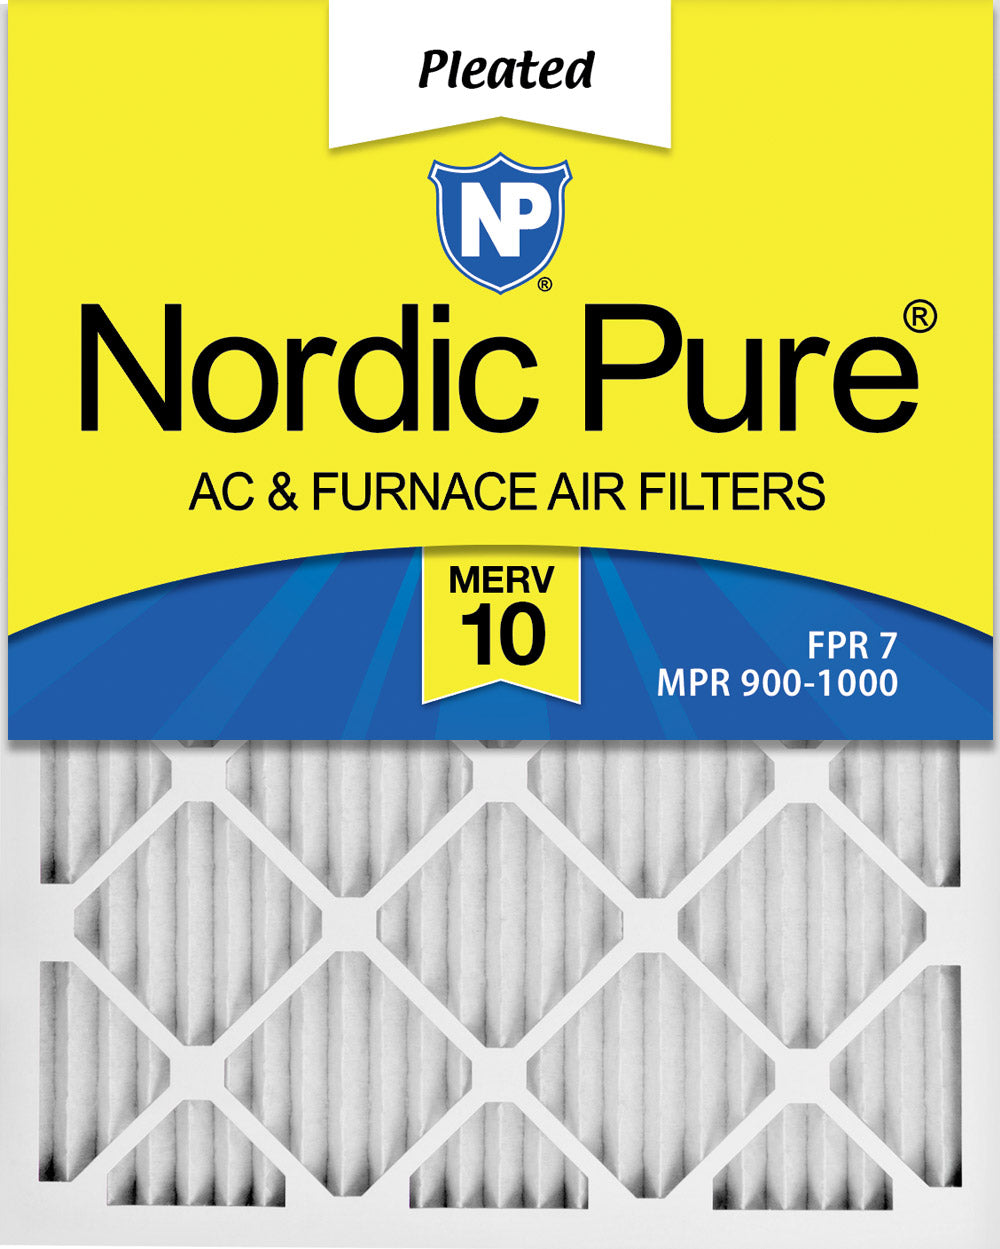 16x24x1 Pleated MERV 10 Air Filters 6 Pack